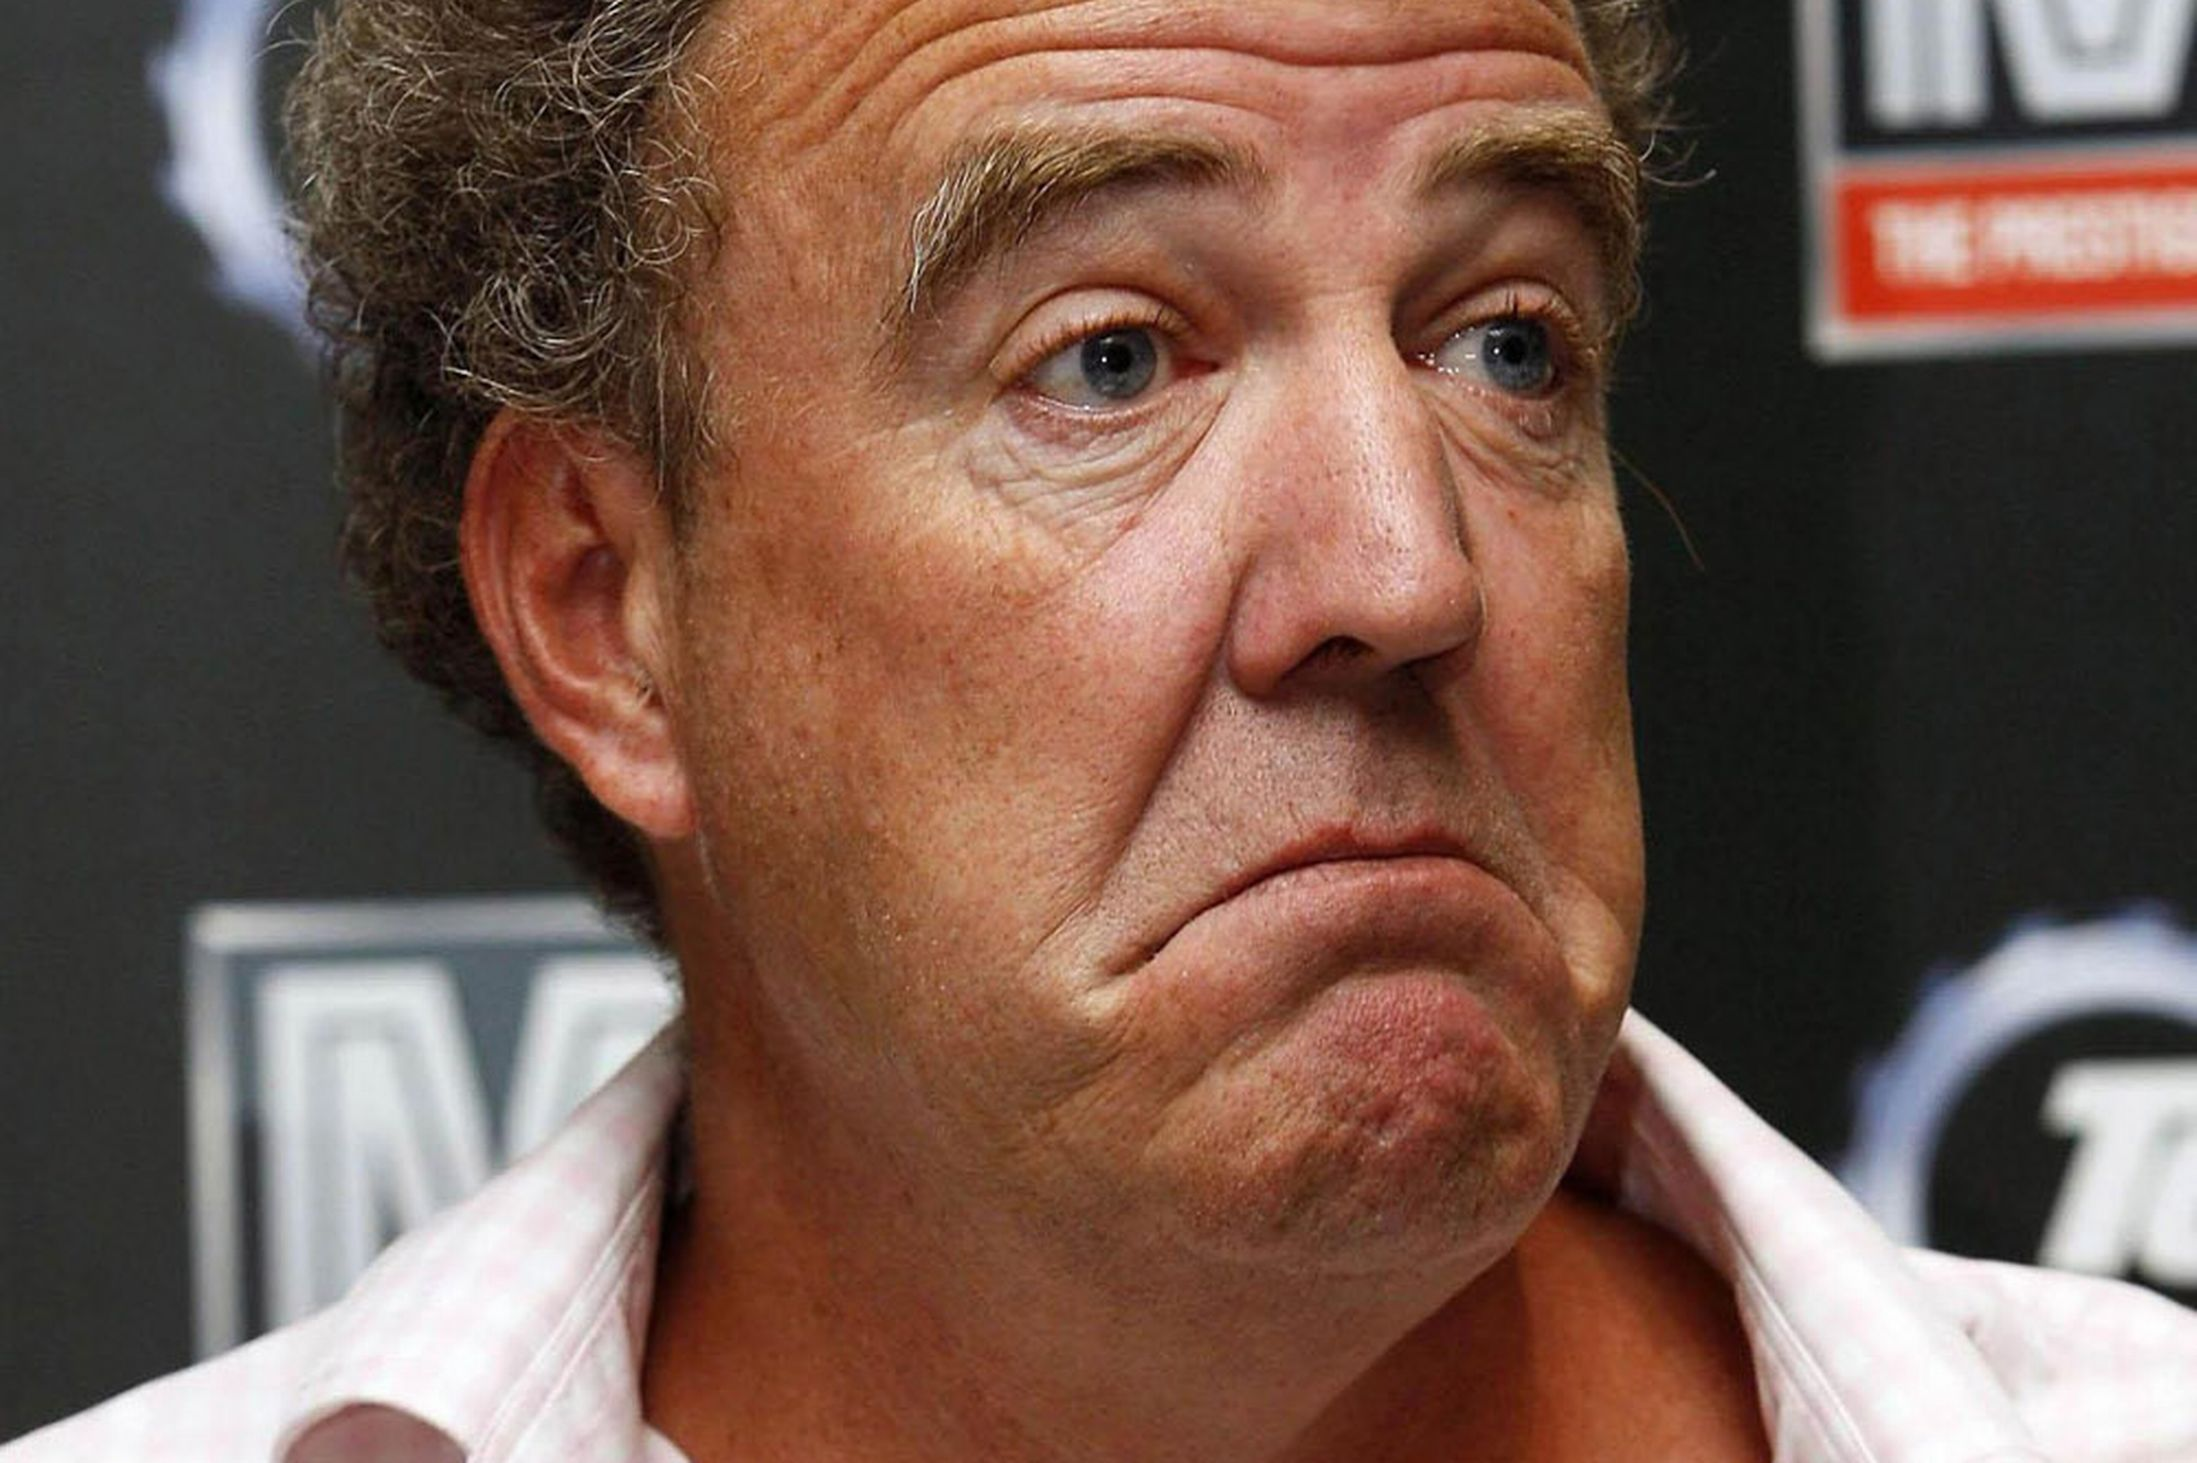 Clarkson considers his mistake the fact that he was fired from the BBC on 21.05.2015 59